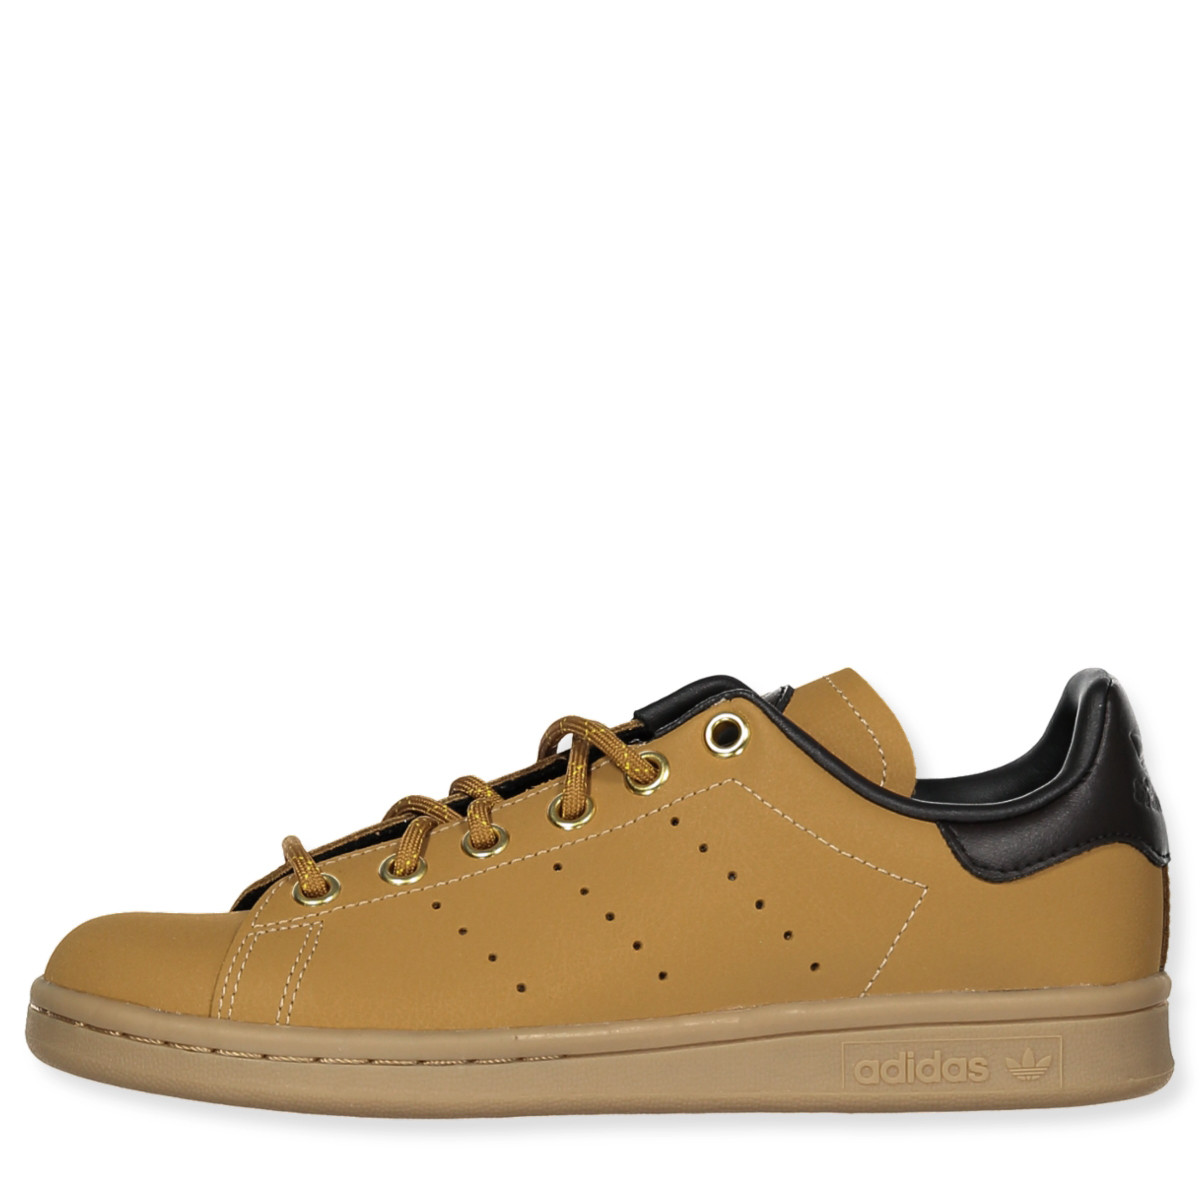 Adidas Stan Smith Mid Brown